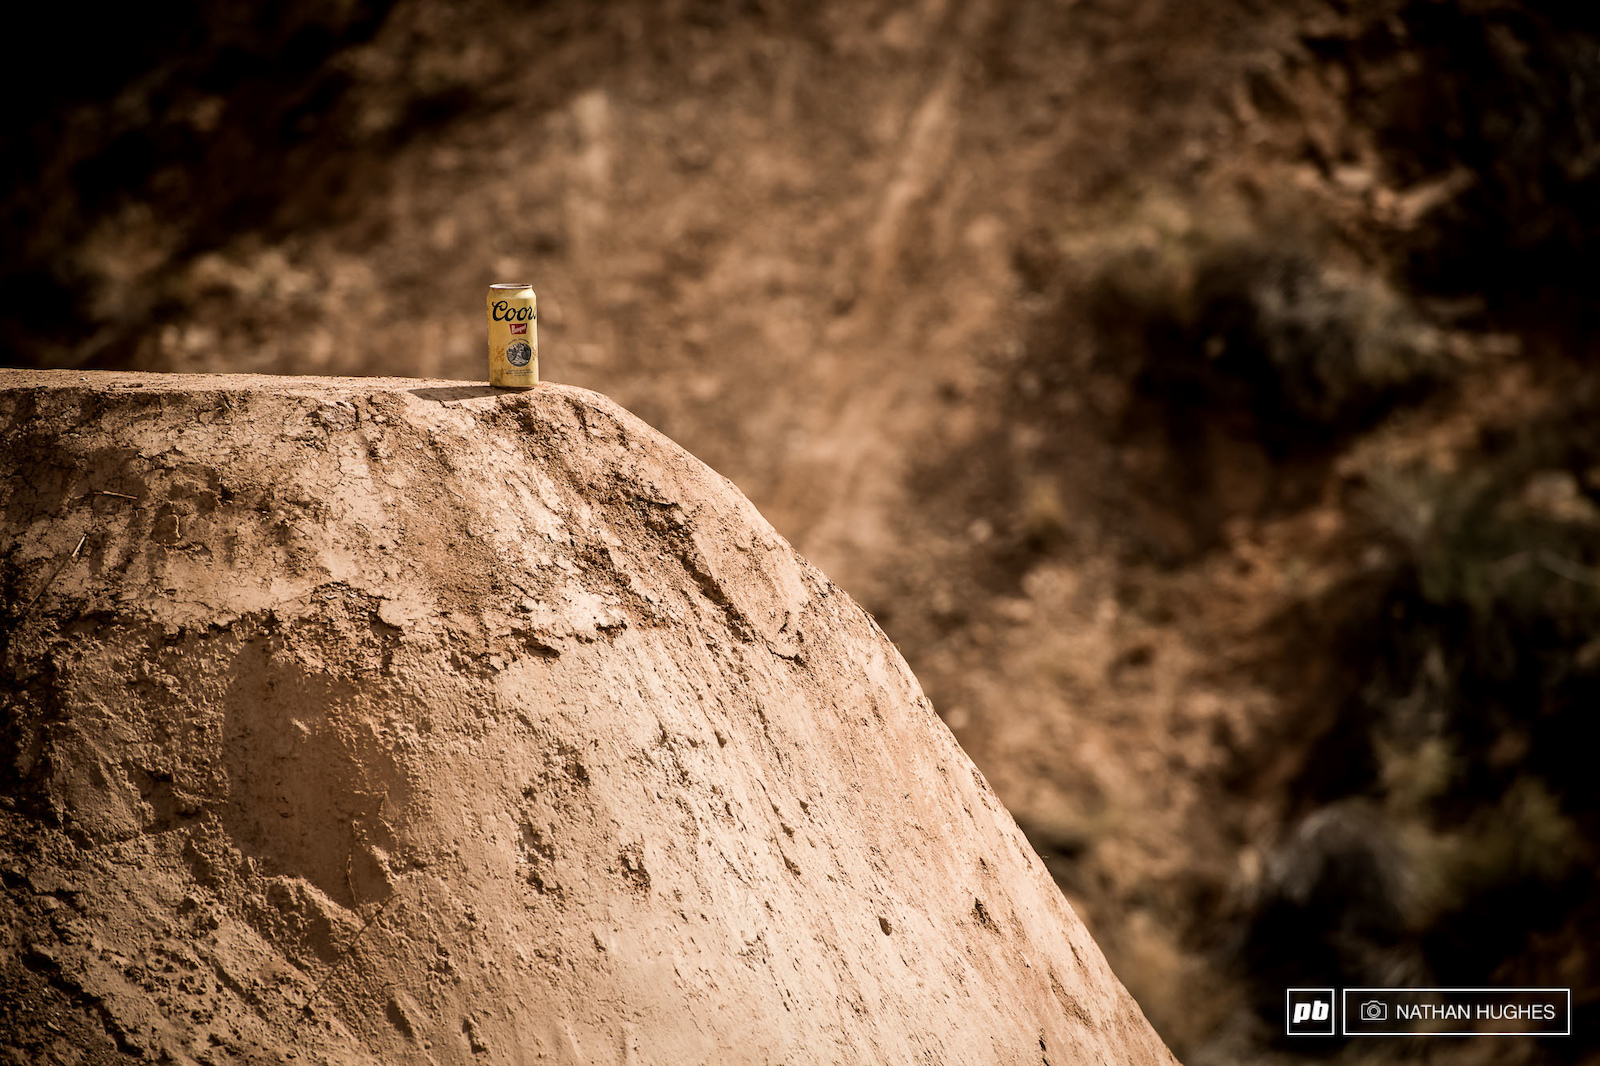 Mark your jumps and drops with a brewski if you want to win Rampage... Semenuk will tell ya.